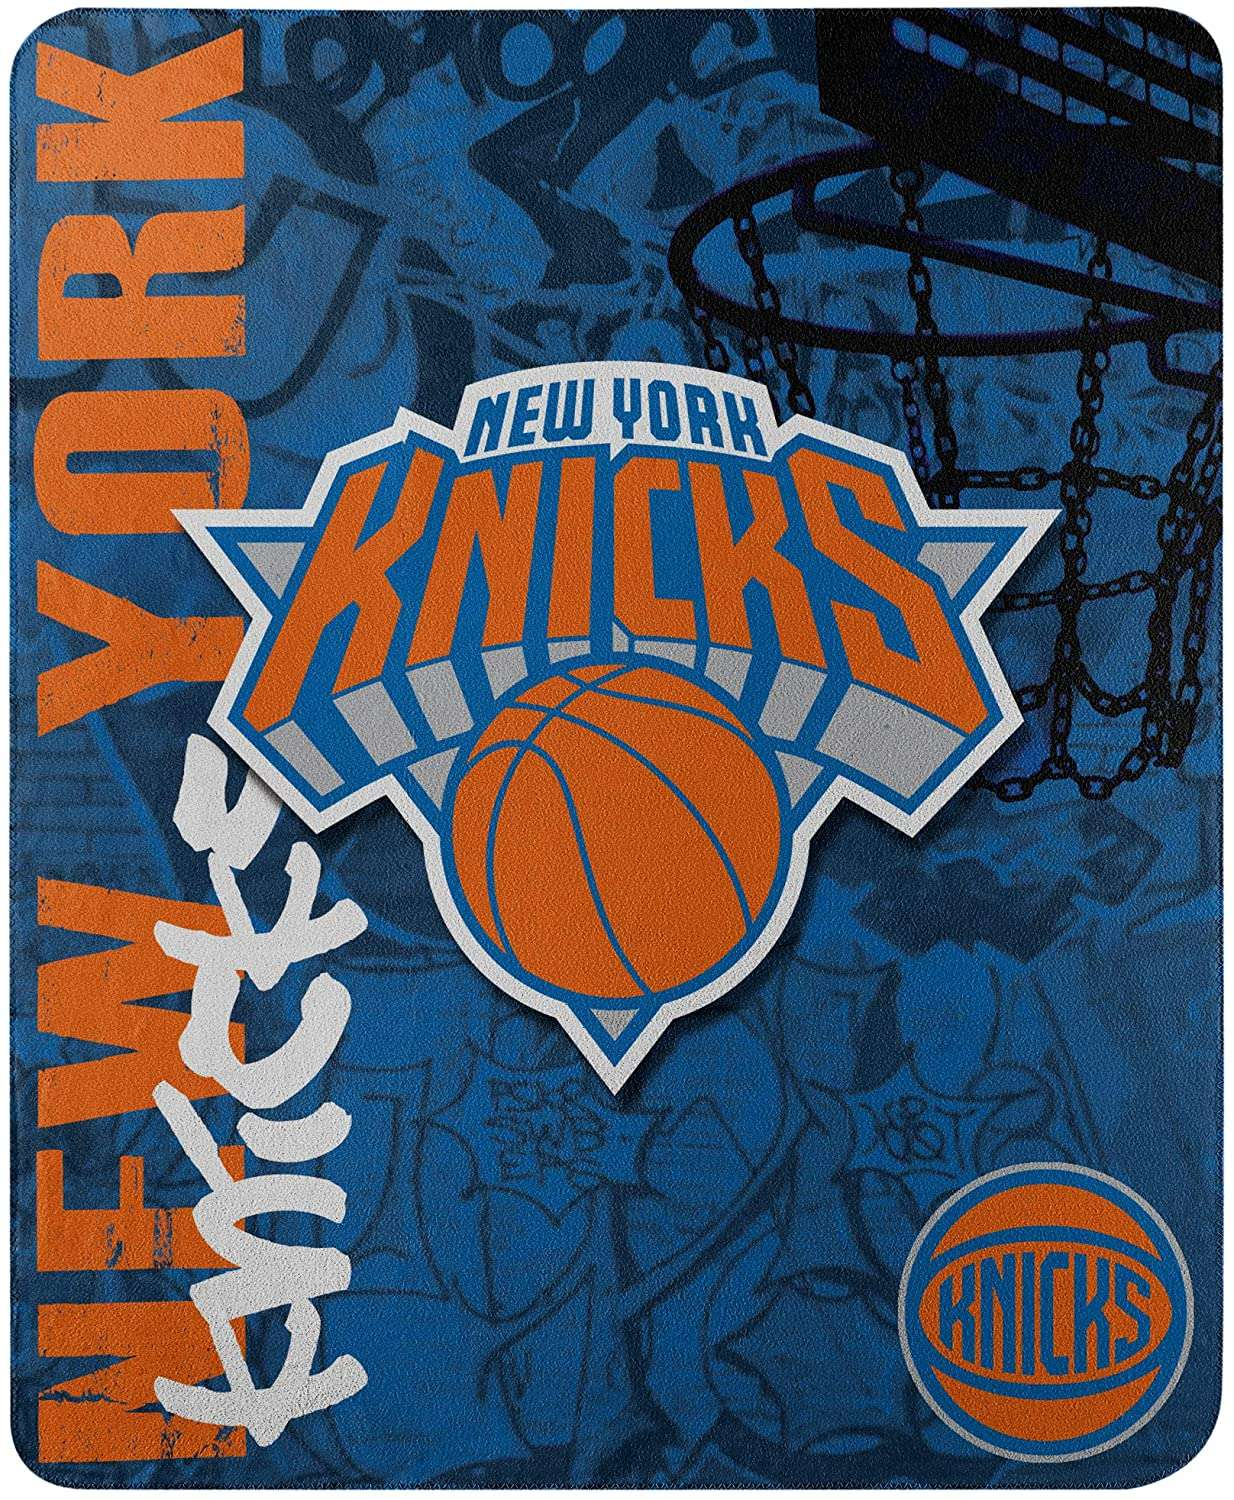 Officially Licensed Nba Throw New York Knicks Fleece Blanket